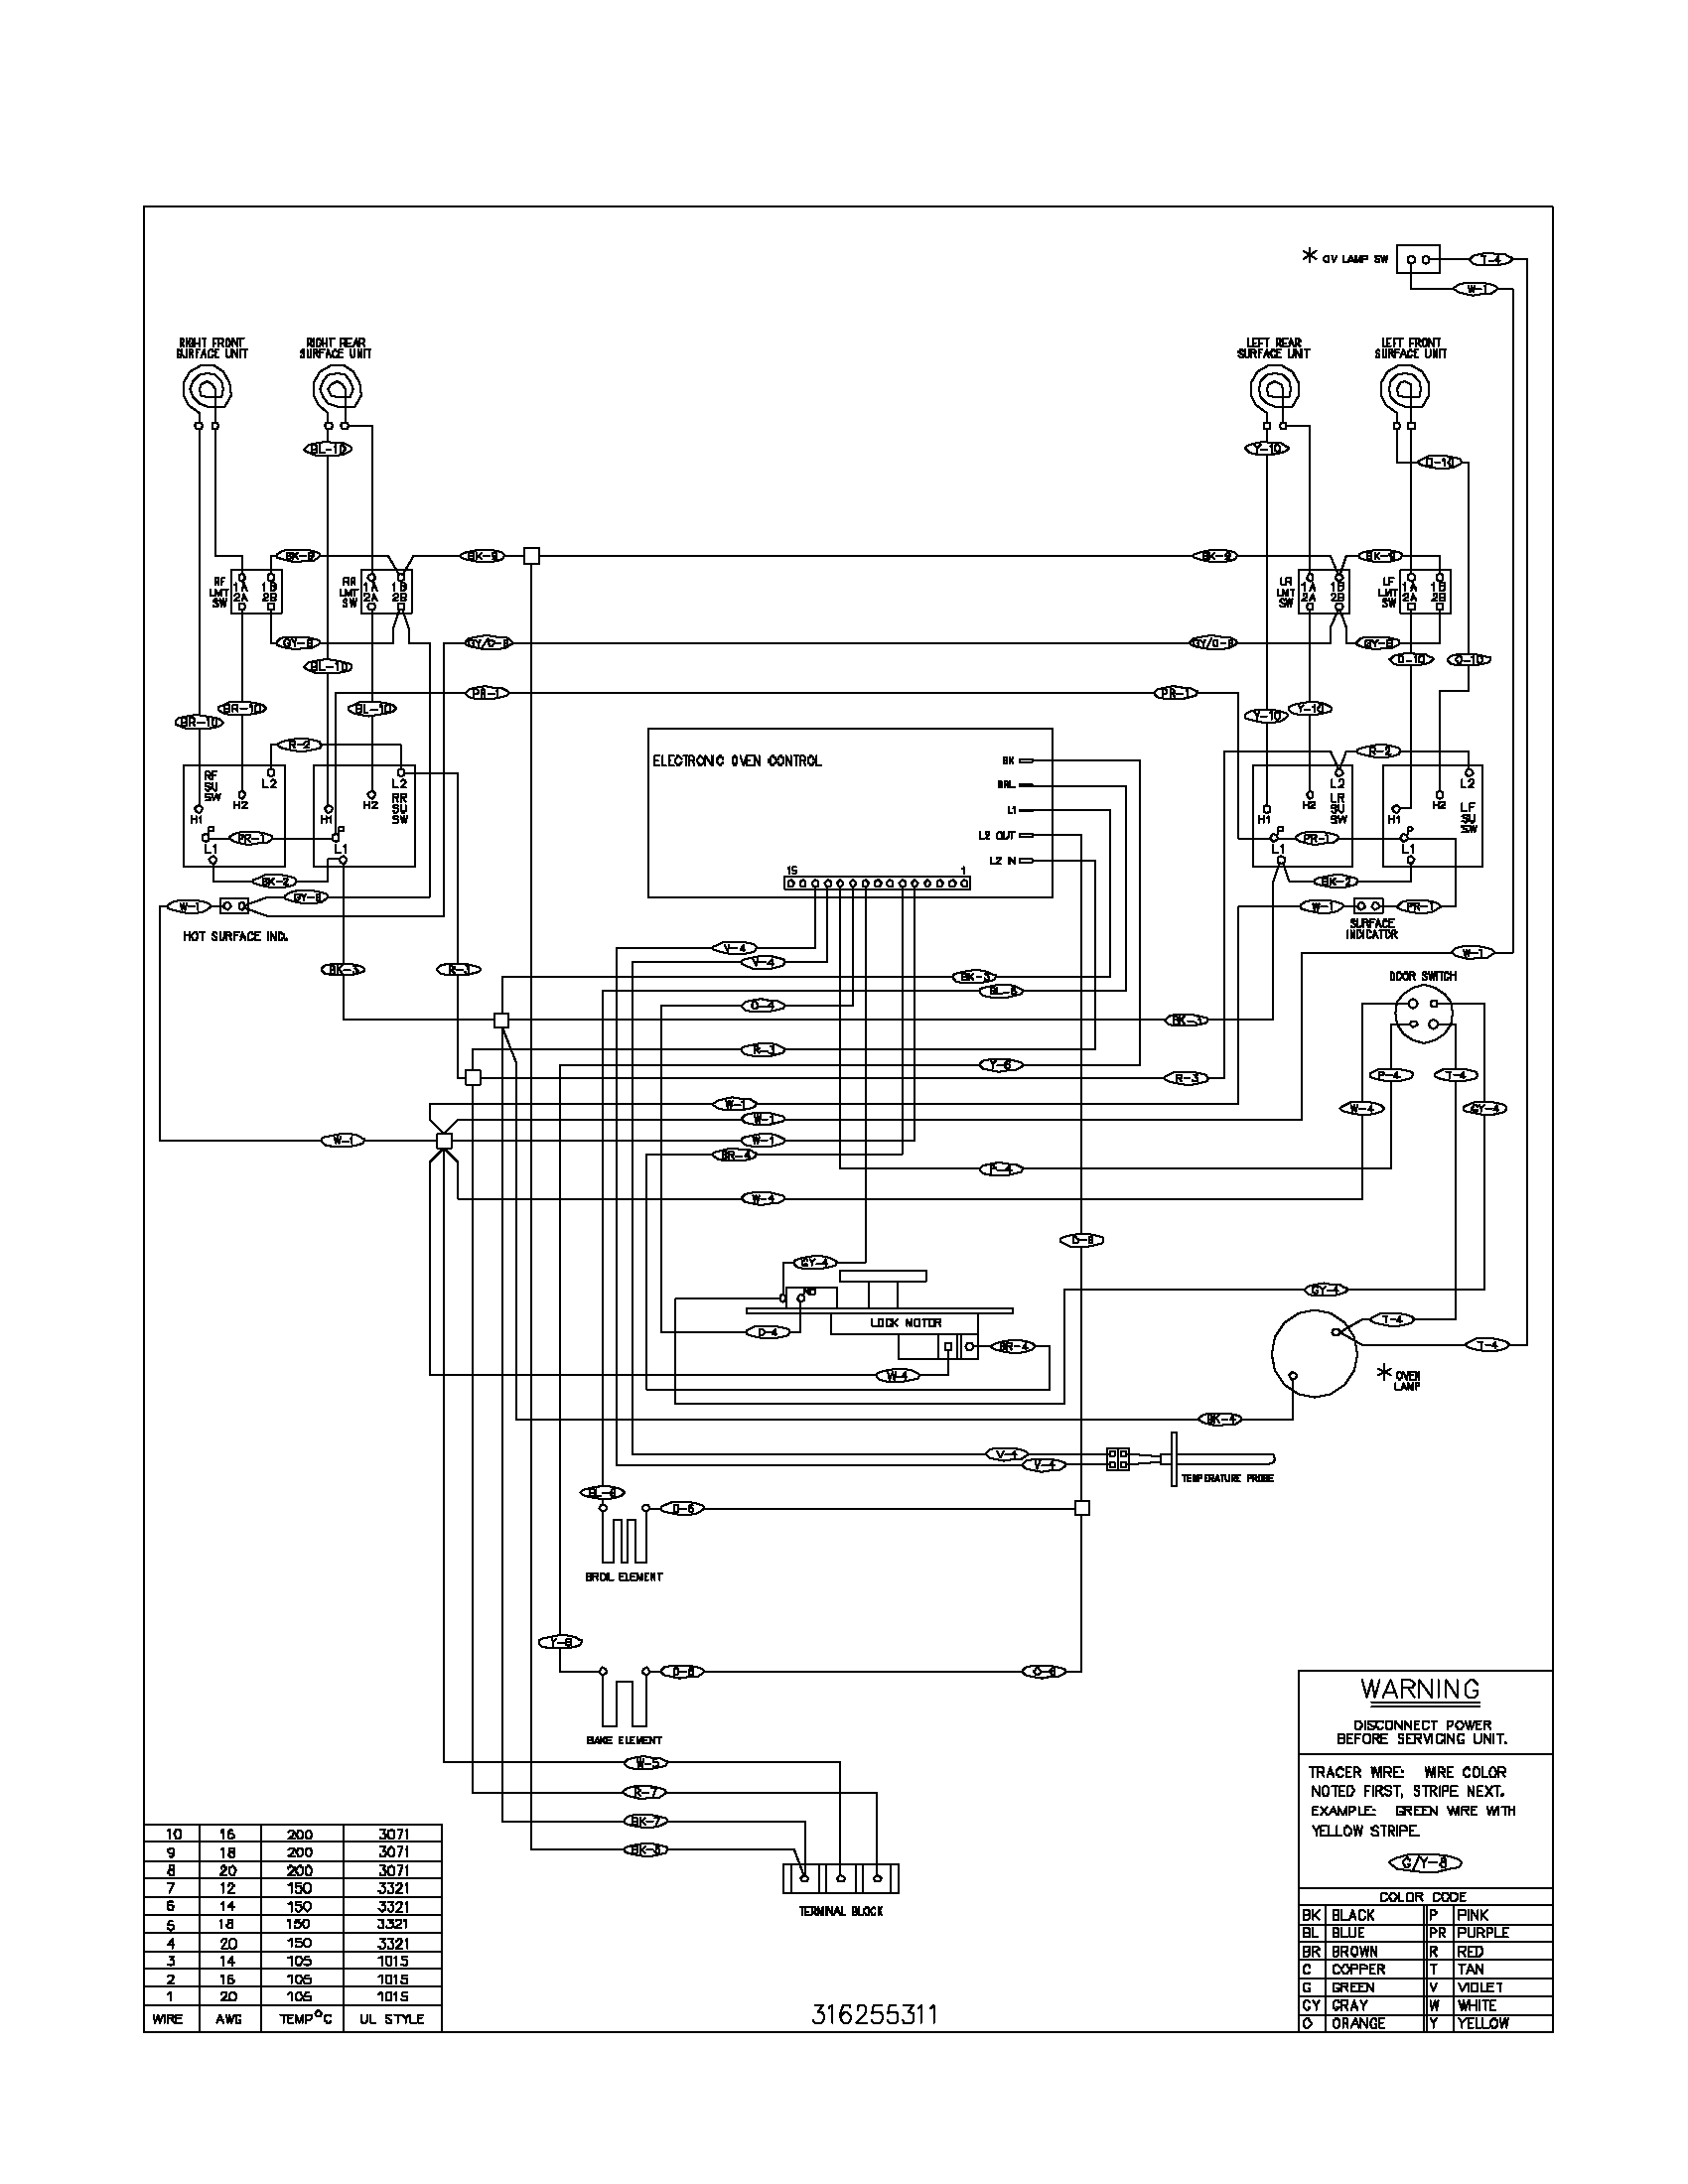 Oven Repair 6 further Index as well Index likewise Index moreover Magtag Electric Dryer Wiring Diagram Thermostat. on electric oven thermostat wiring diagram